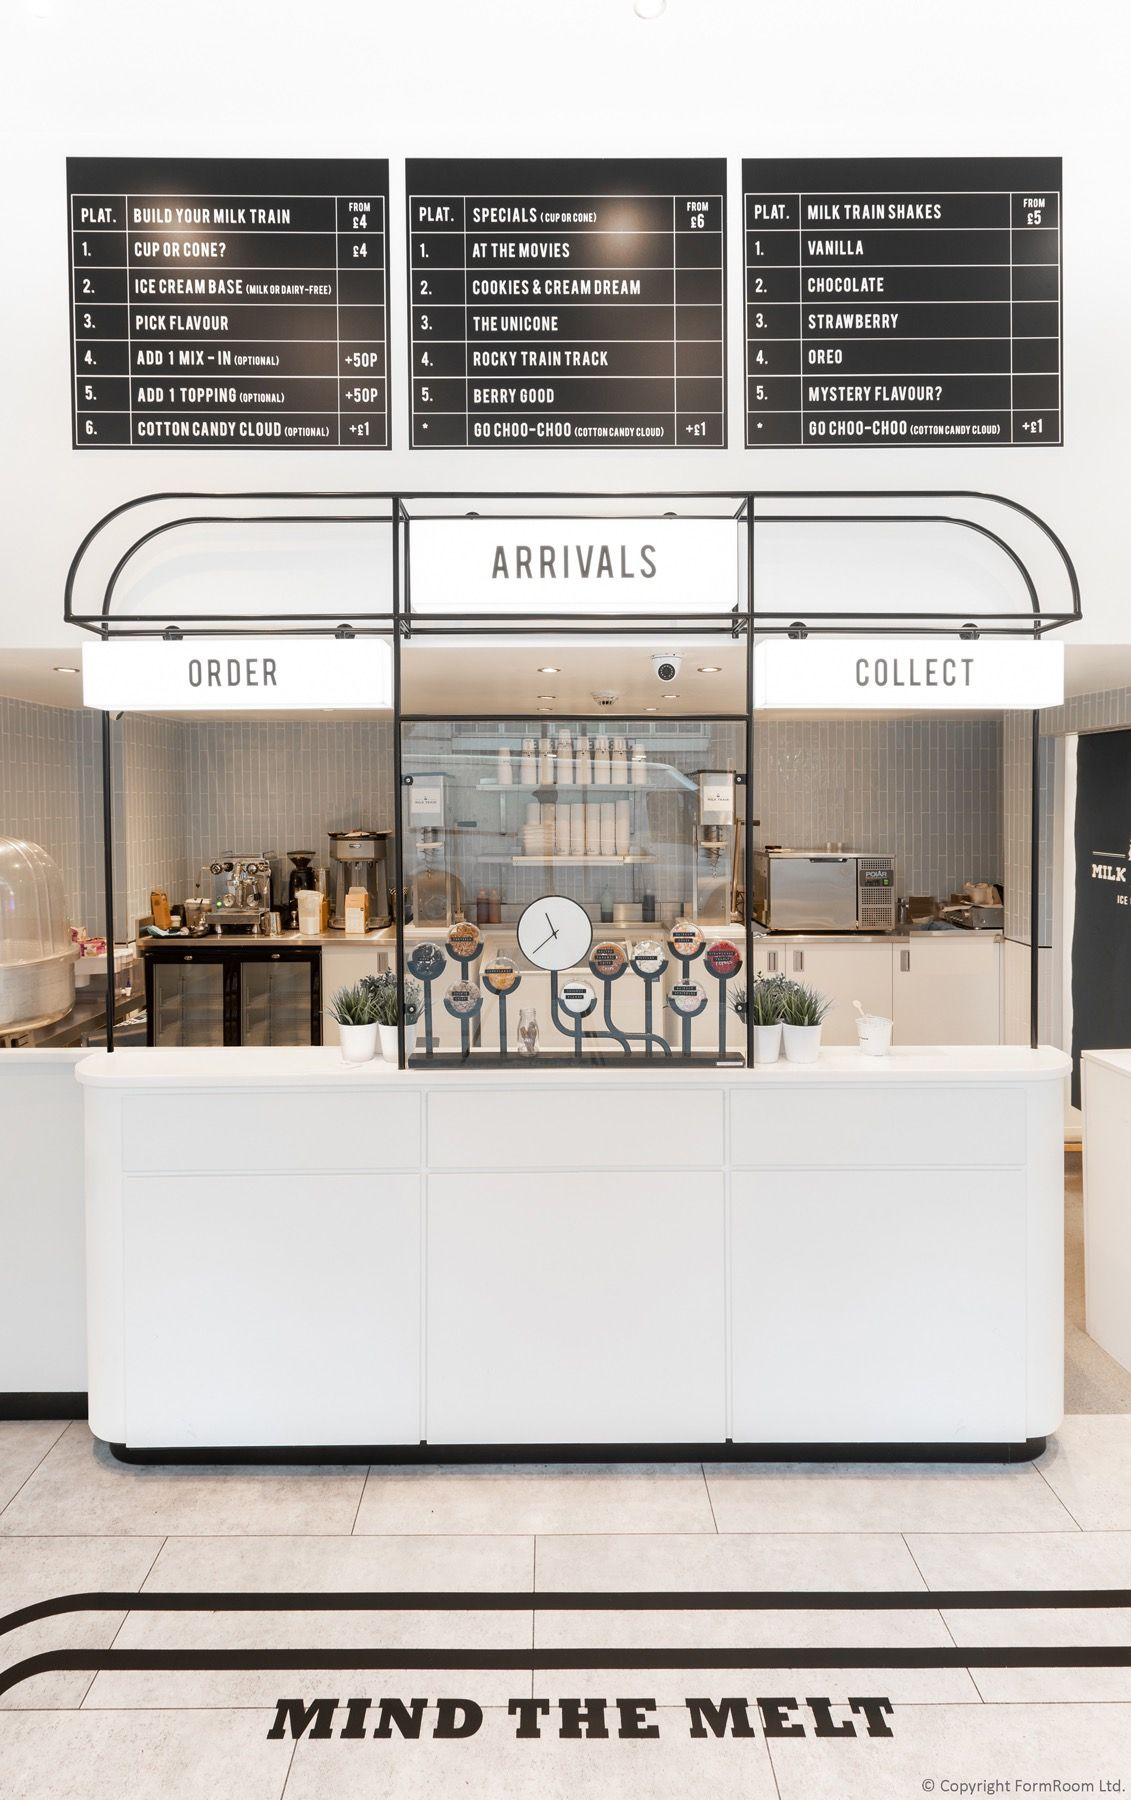 Formroom Completes Instagrammable Interior Design For Ice Cream